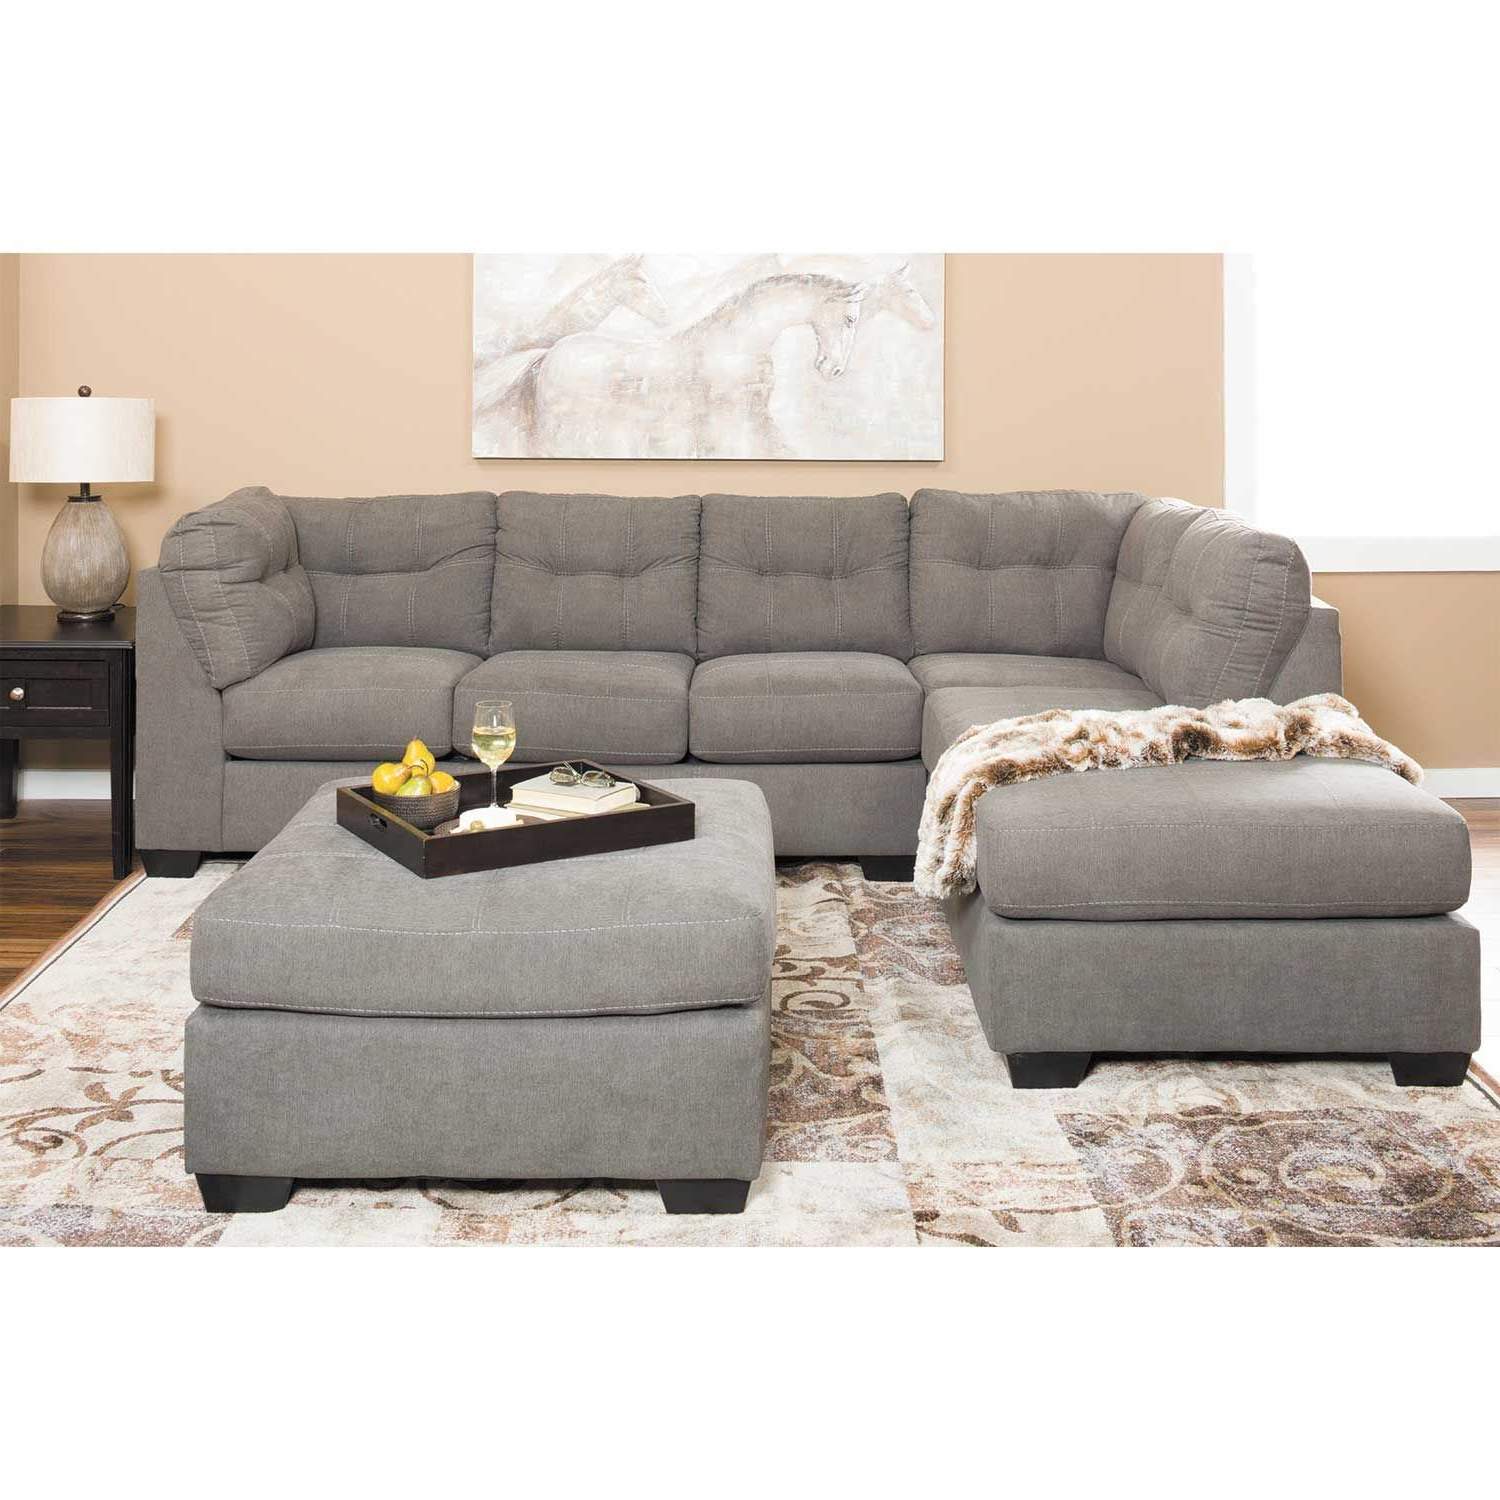 Maier Charcoal 2 Piece Sectional With Laf Chaise (View 9 of 20)